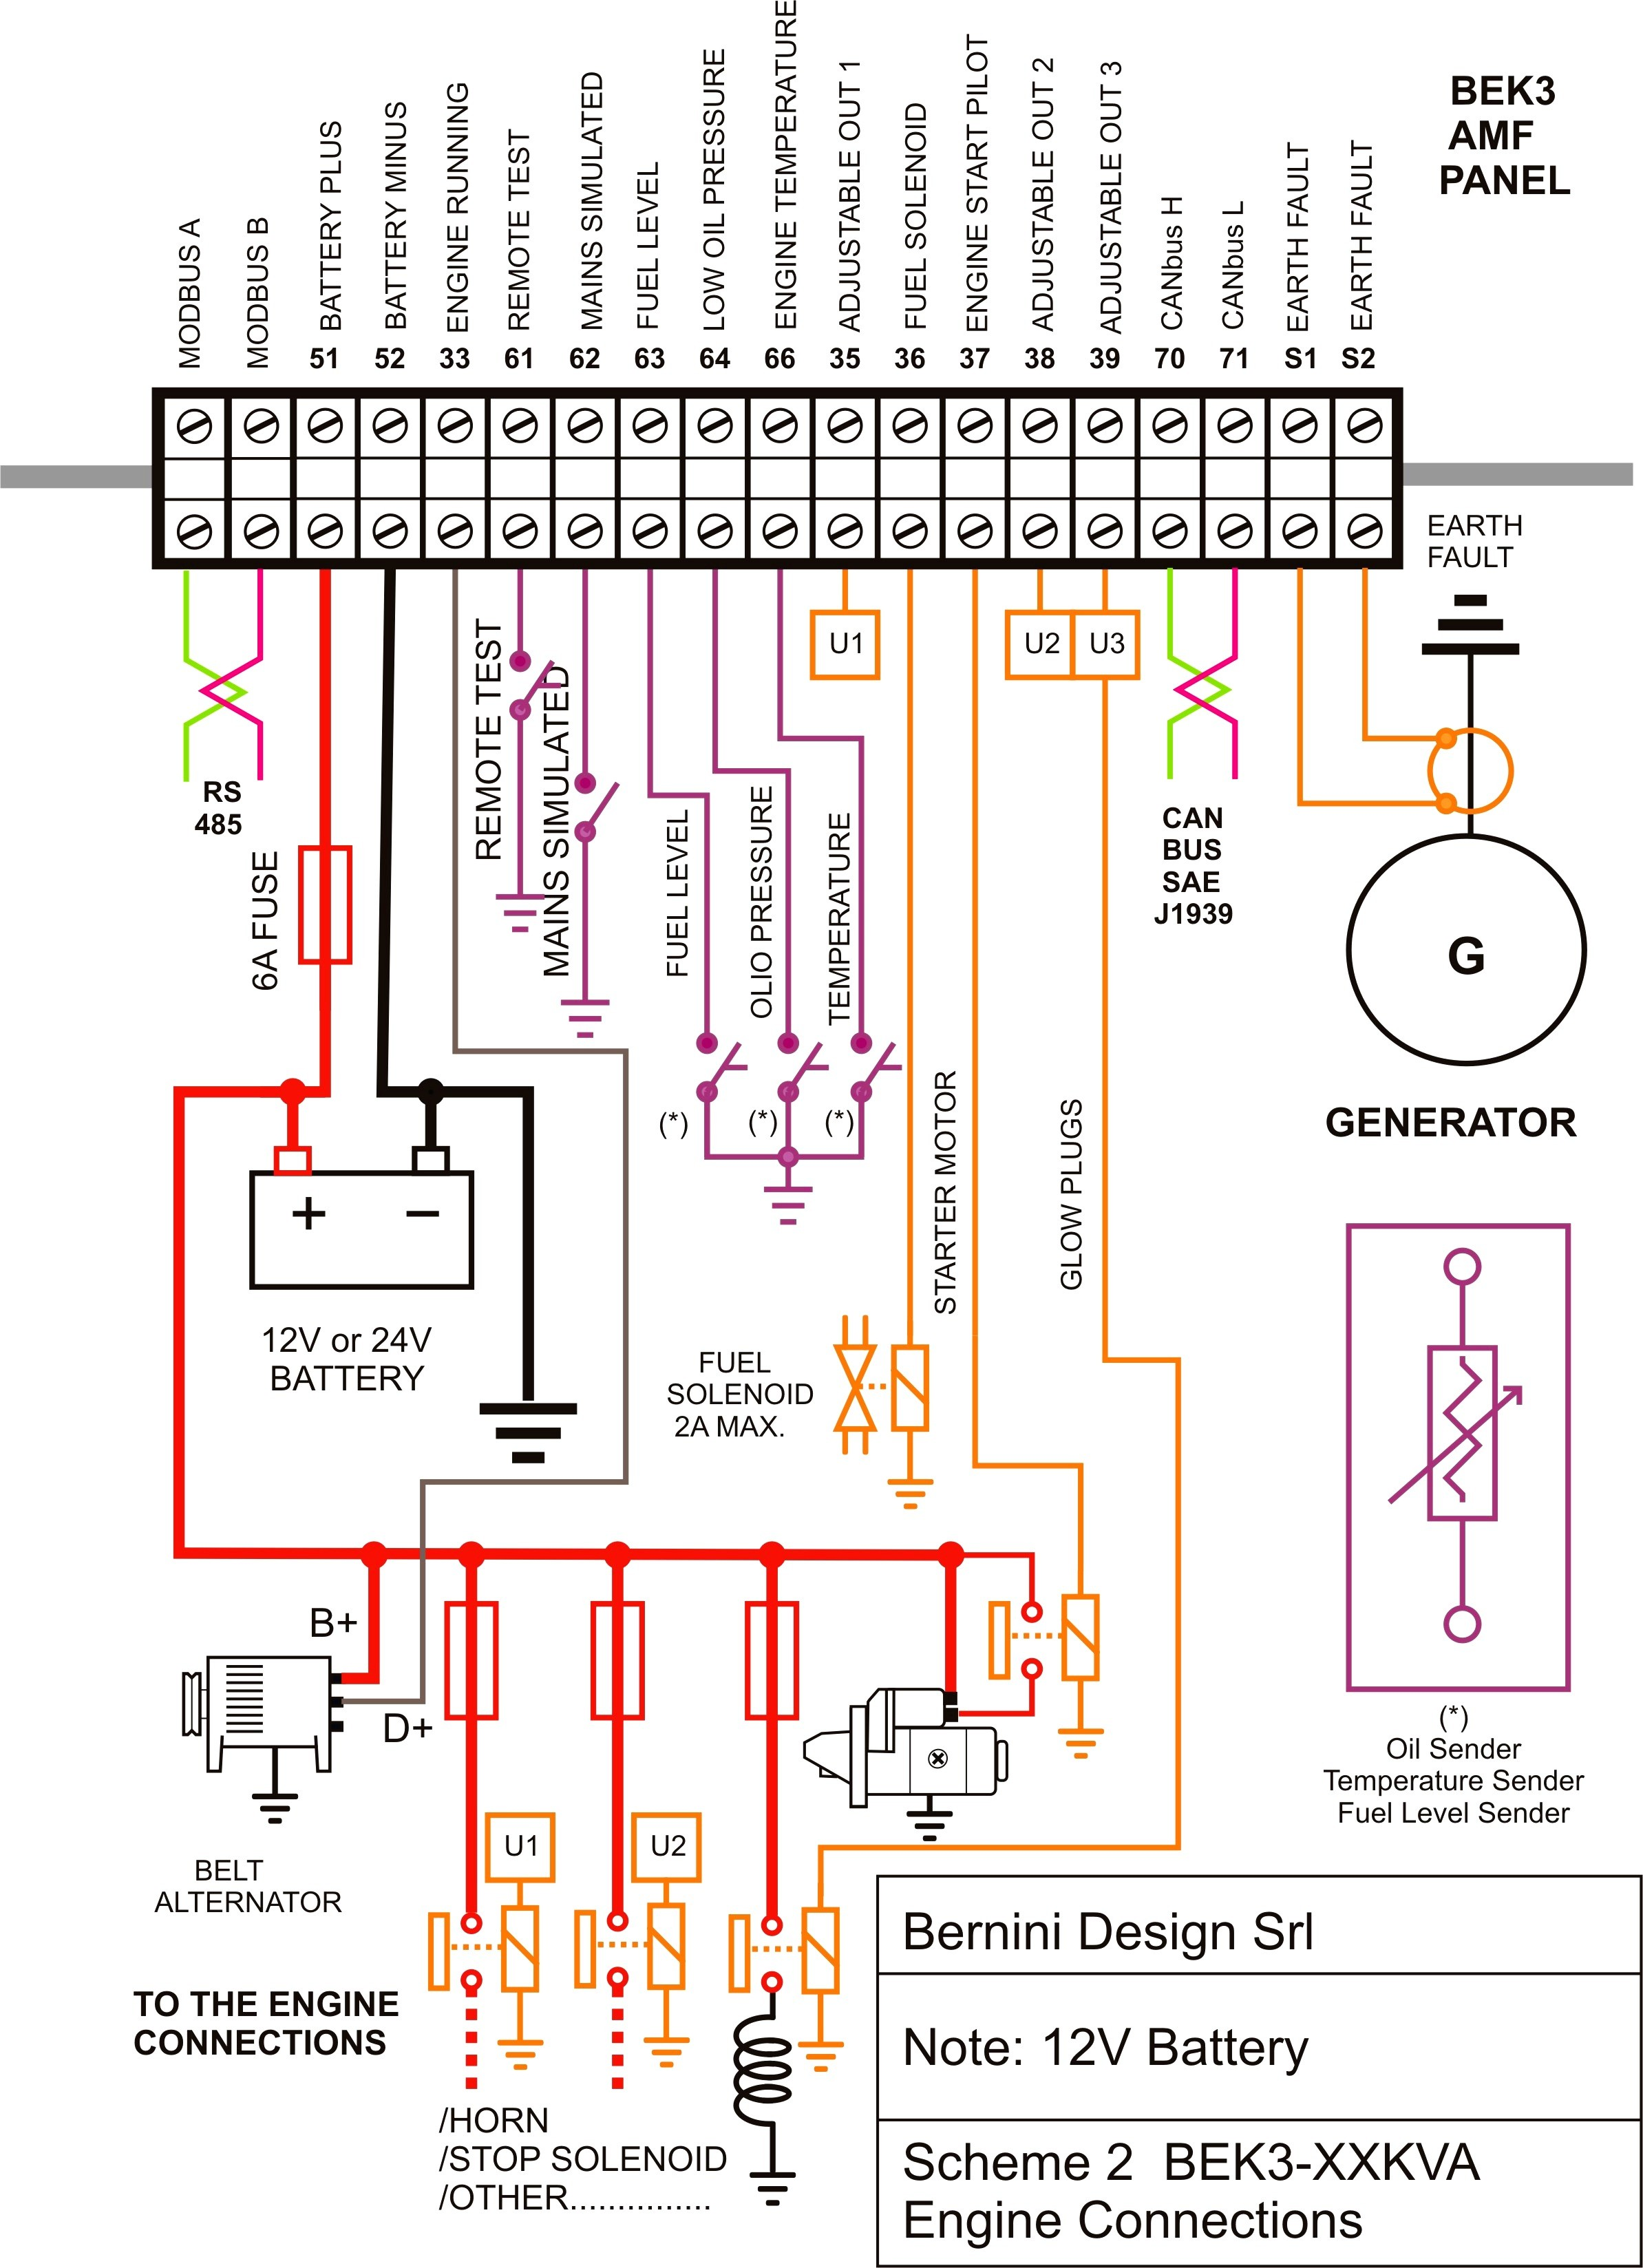 Schematic Diagram Of Diesel Engine Ponent Electrical Control Generator Panel Wiring